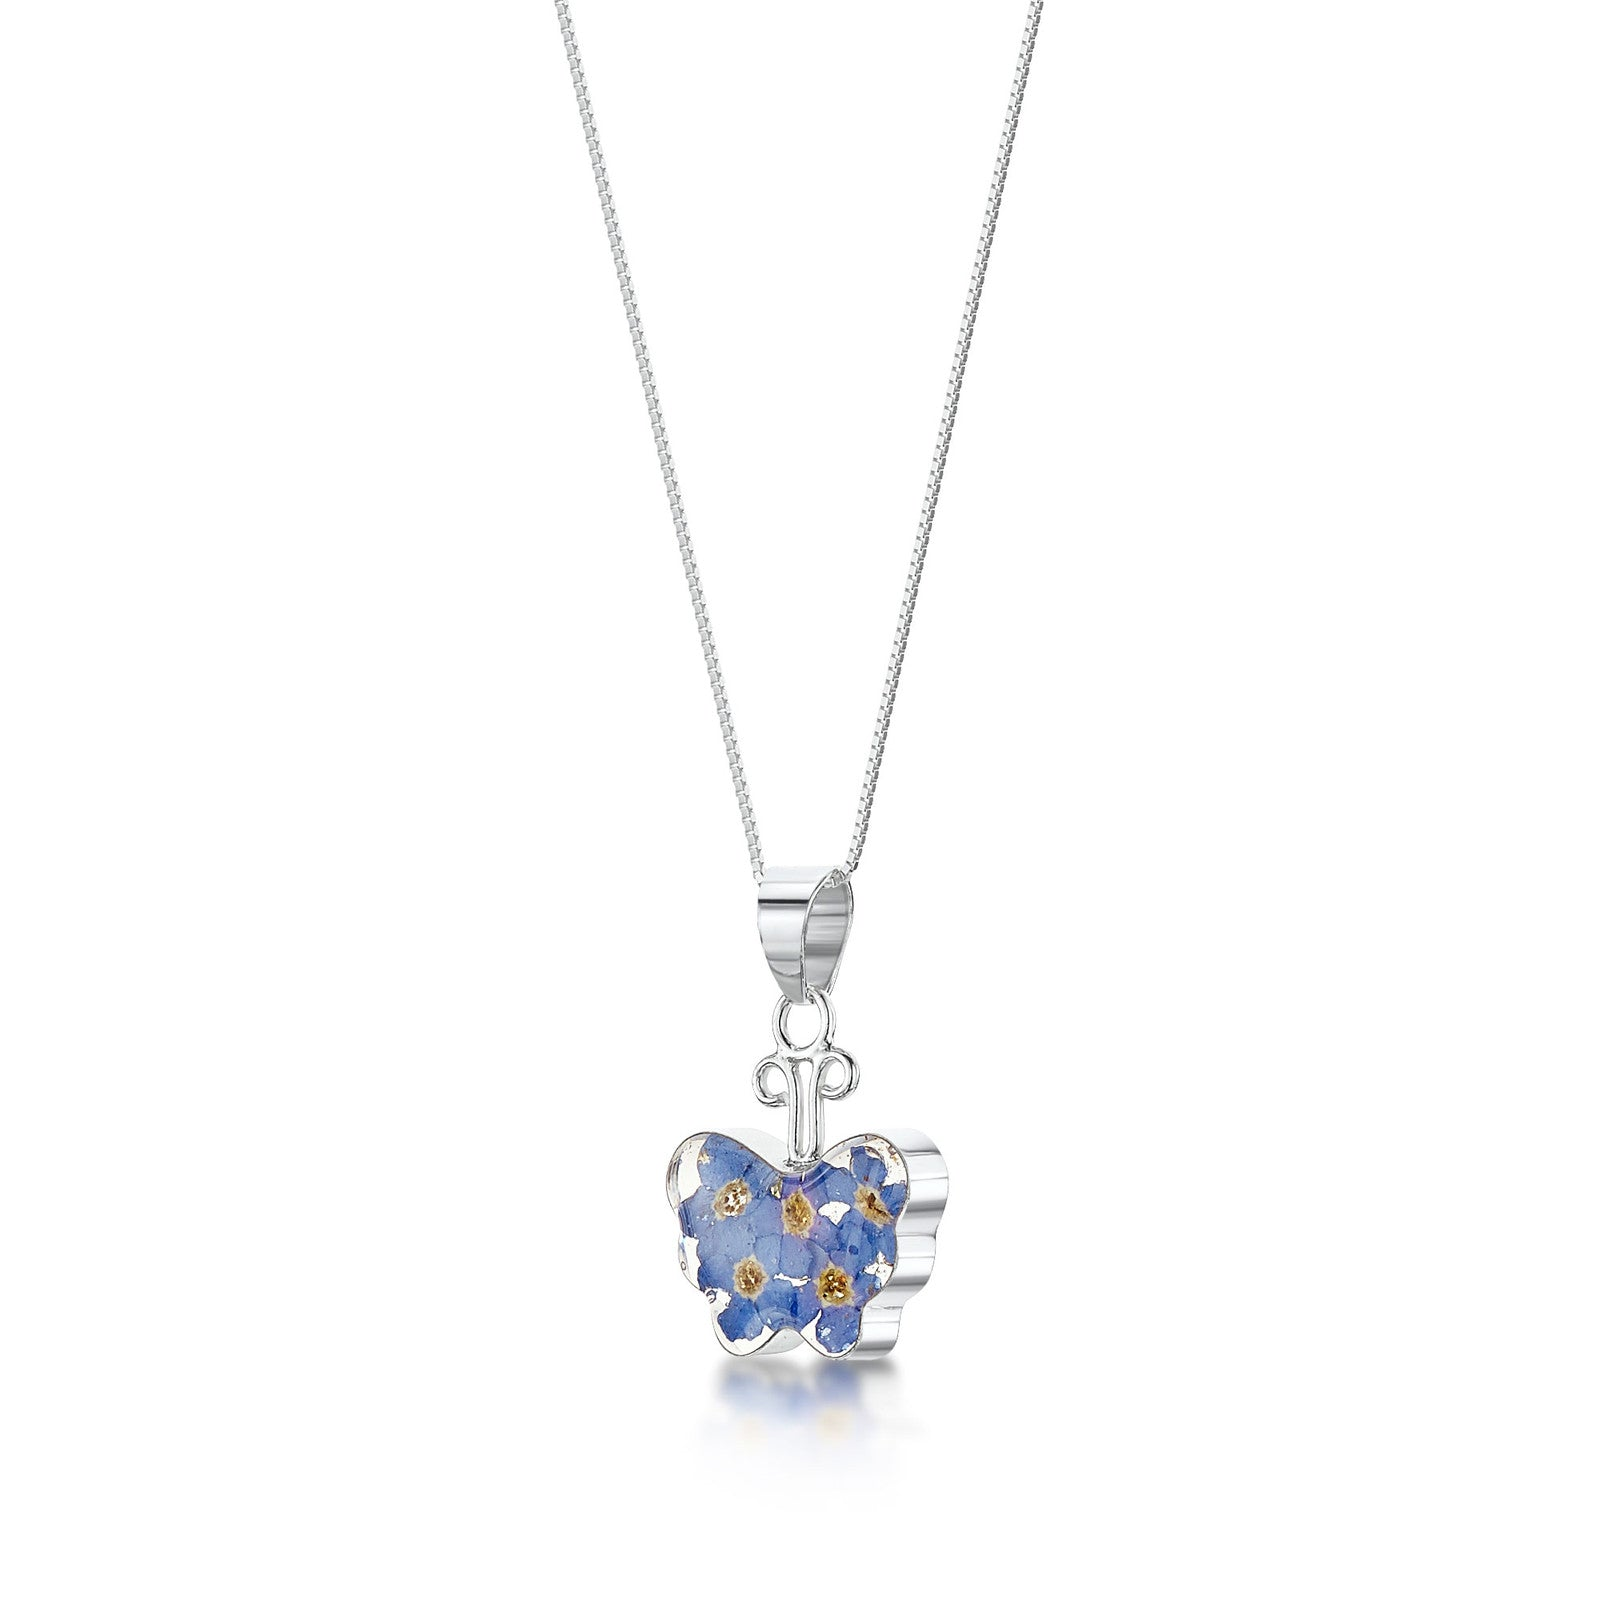 Silver Necklace - Forget-me-not - Small Butterfly